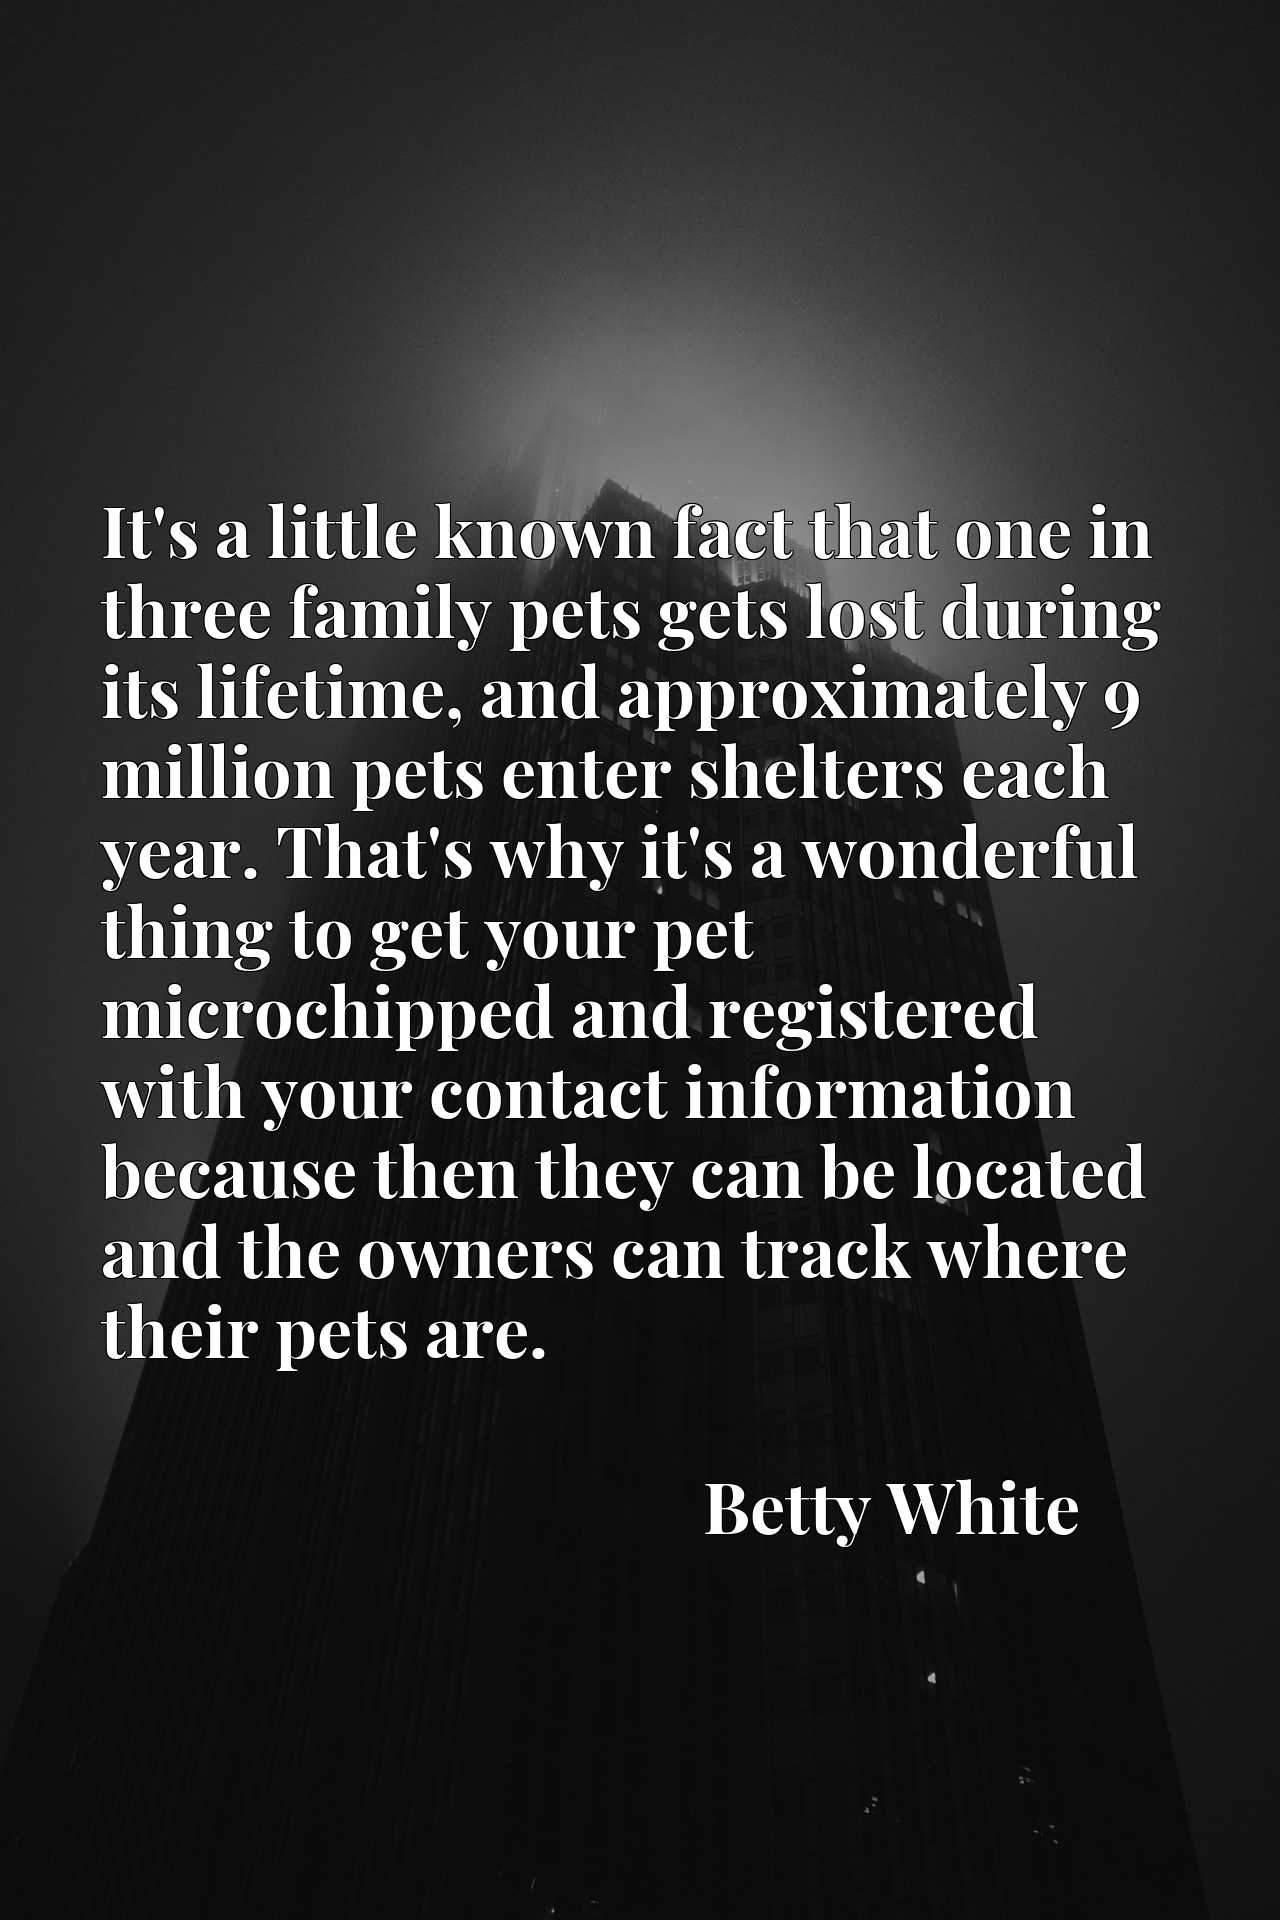 It's a little known fact that one in three family pets gets lost during its lifetime, and approximately 9 million pets enter shelters each year. That's why it's a wonderful thing to get your pet microchipped and registered with your contact information because then they can be located and the owners can track where their pets are.